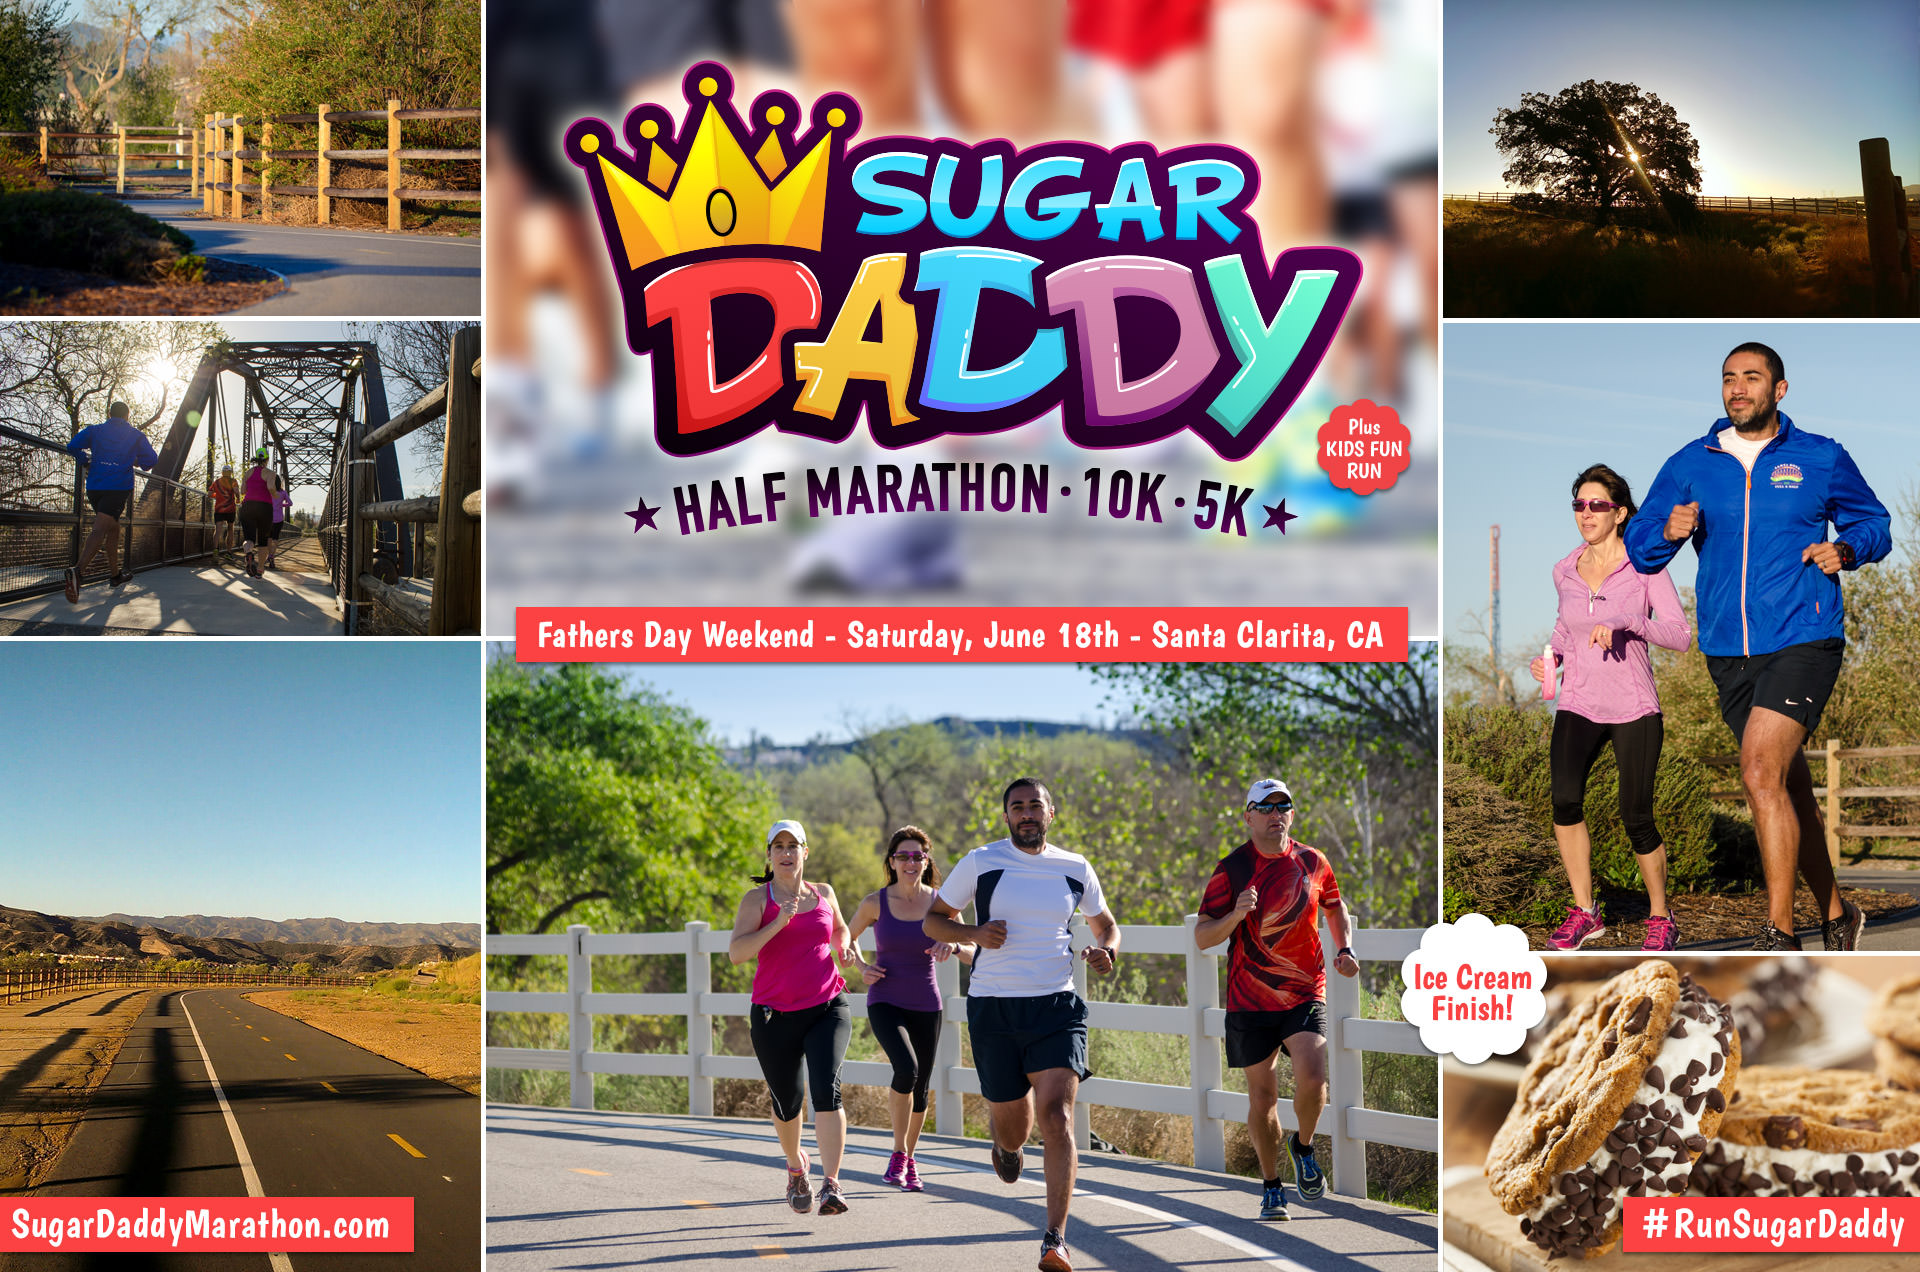 Sugar Daddy Half Marathon/10K/5K/Kids Fun Run